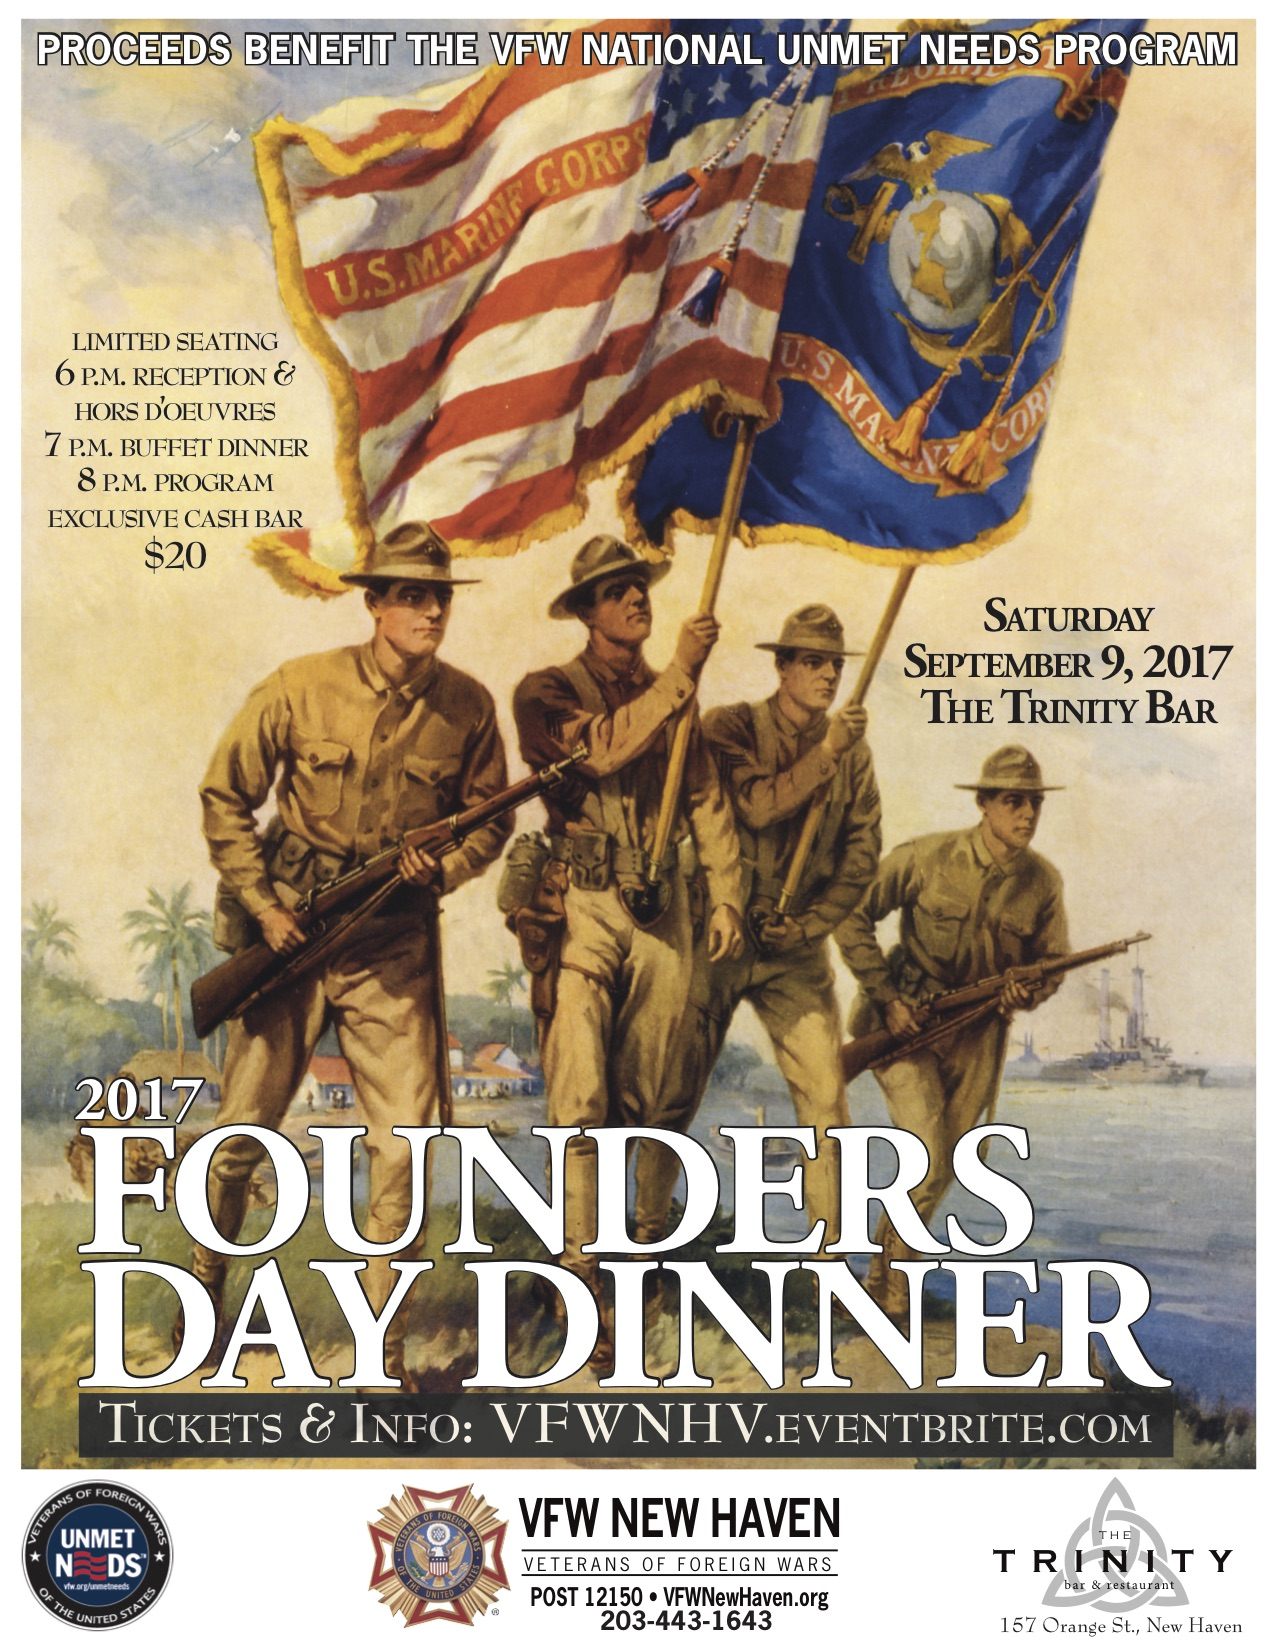 VFW NEW HAVEN TO HOST 2017 FOUNDERS DAY DINNER